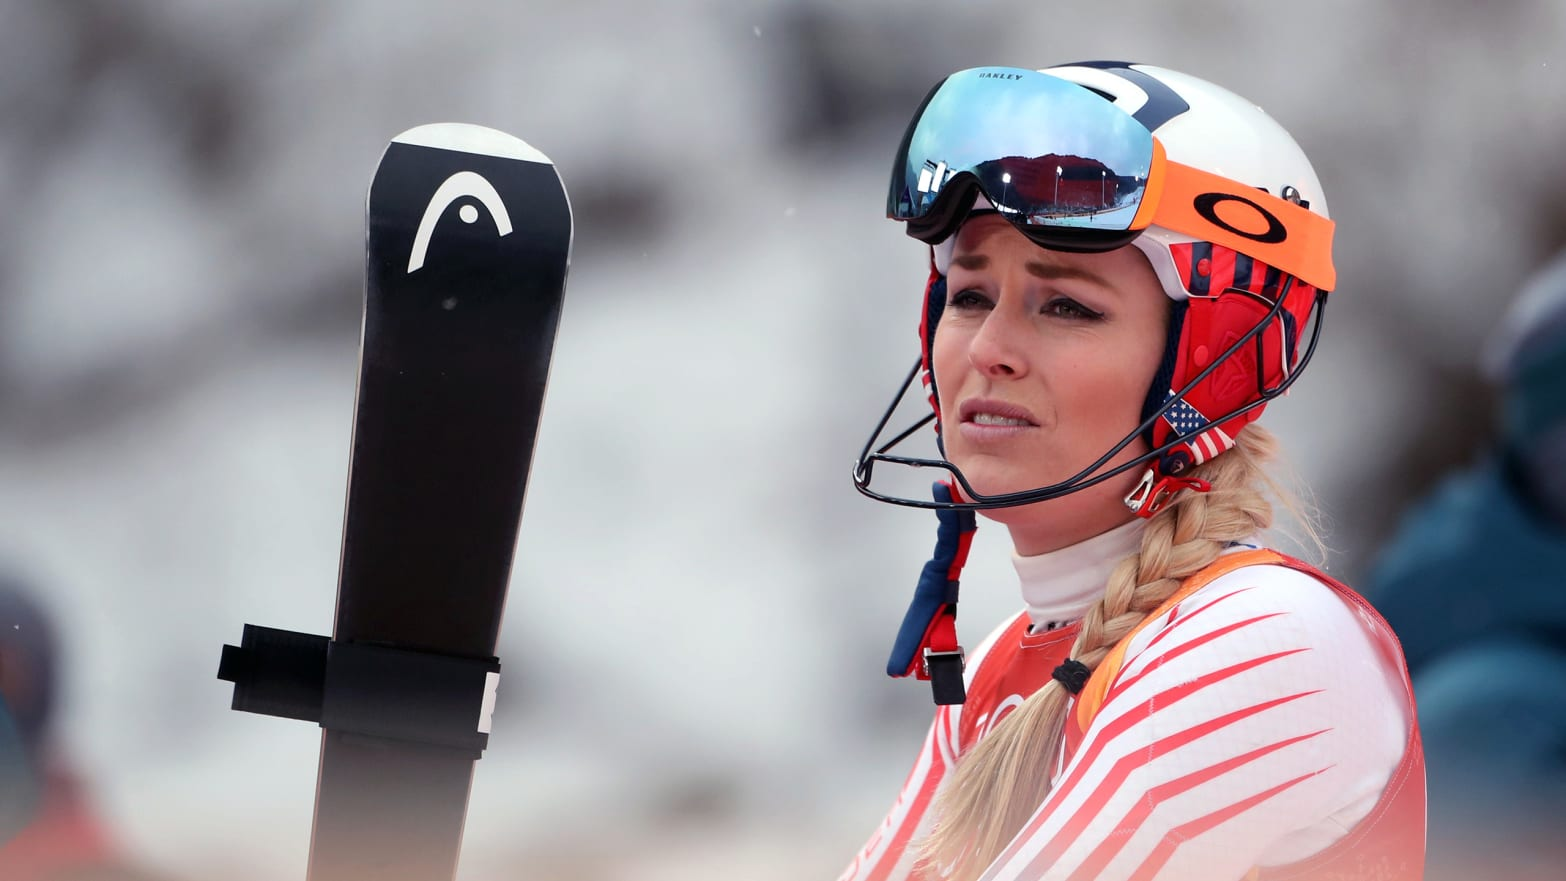 2018 winter olympics pyeongchang lindsay vonn skiing post sad disappoint kami craig depression elana myers taylor samantha peszek bridget sloan nicole detling serotonin dopamine summer four years